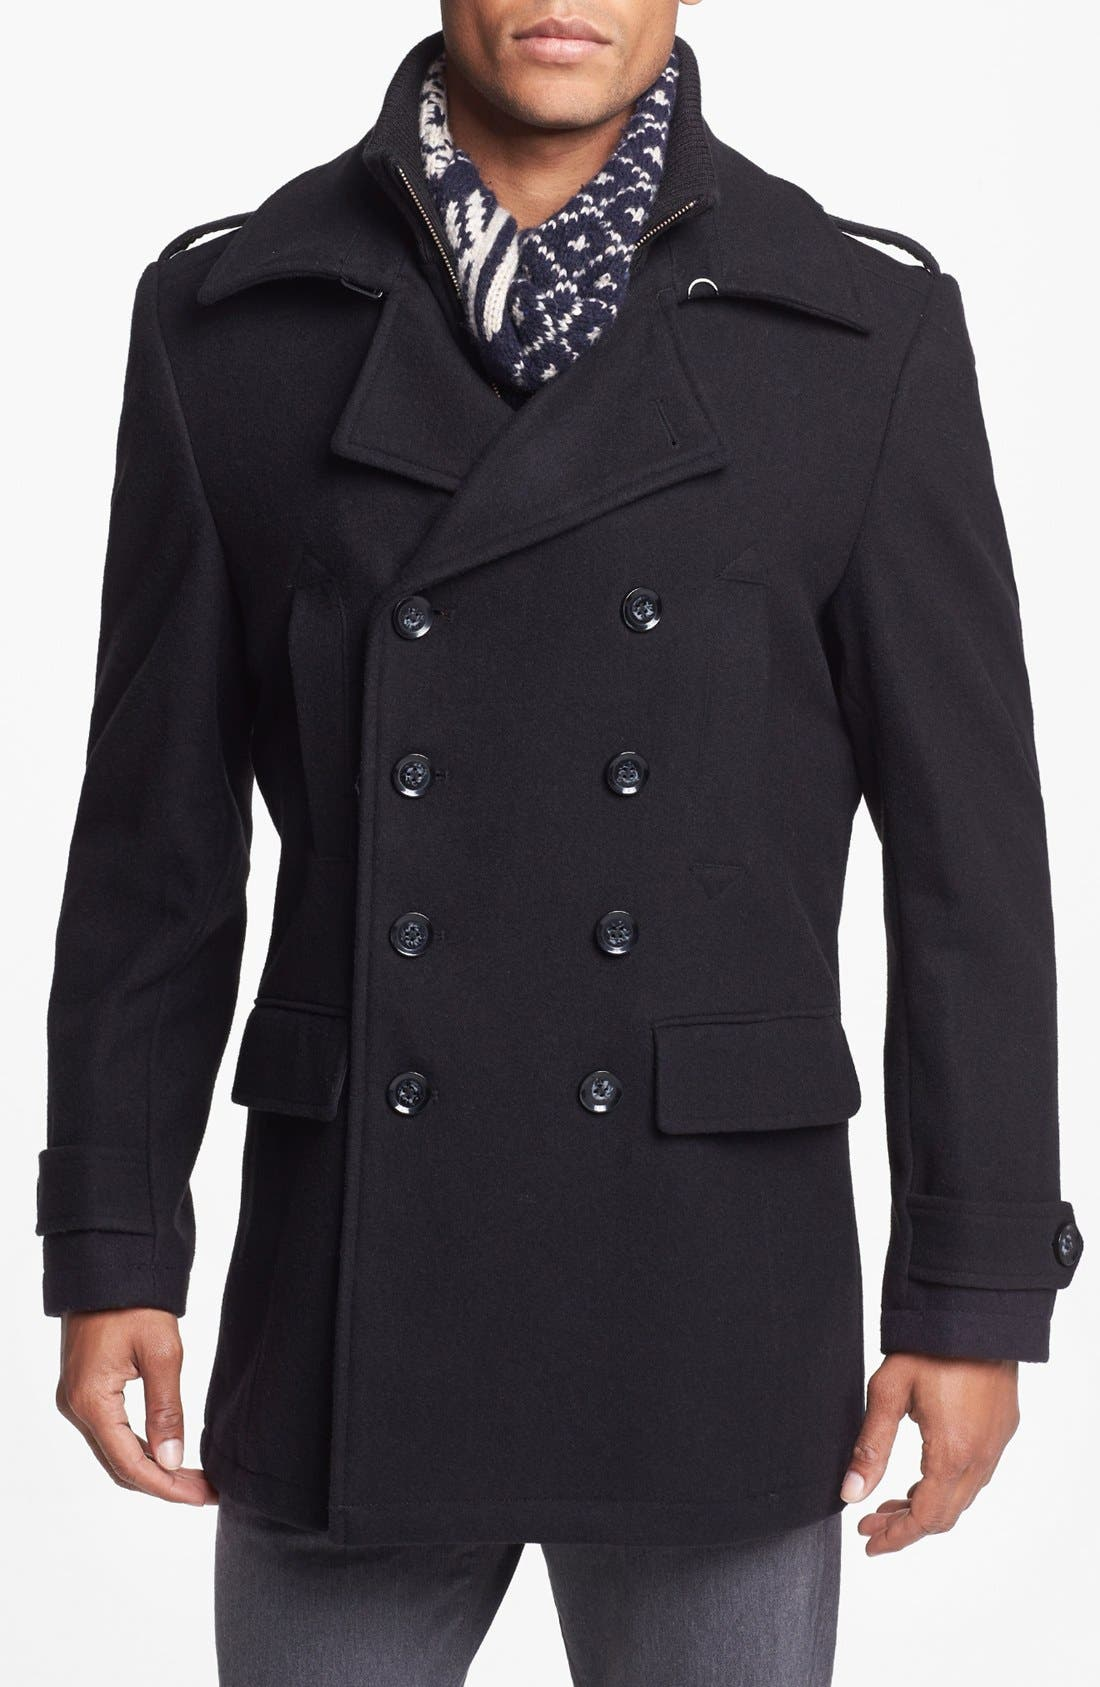 Alternate Image 1 Selected - 7 Diamonds 'Glasgow' Regular Fit Double Breasted Peacoat